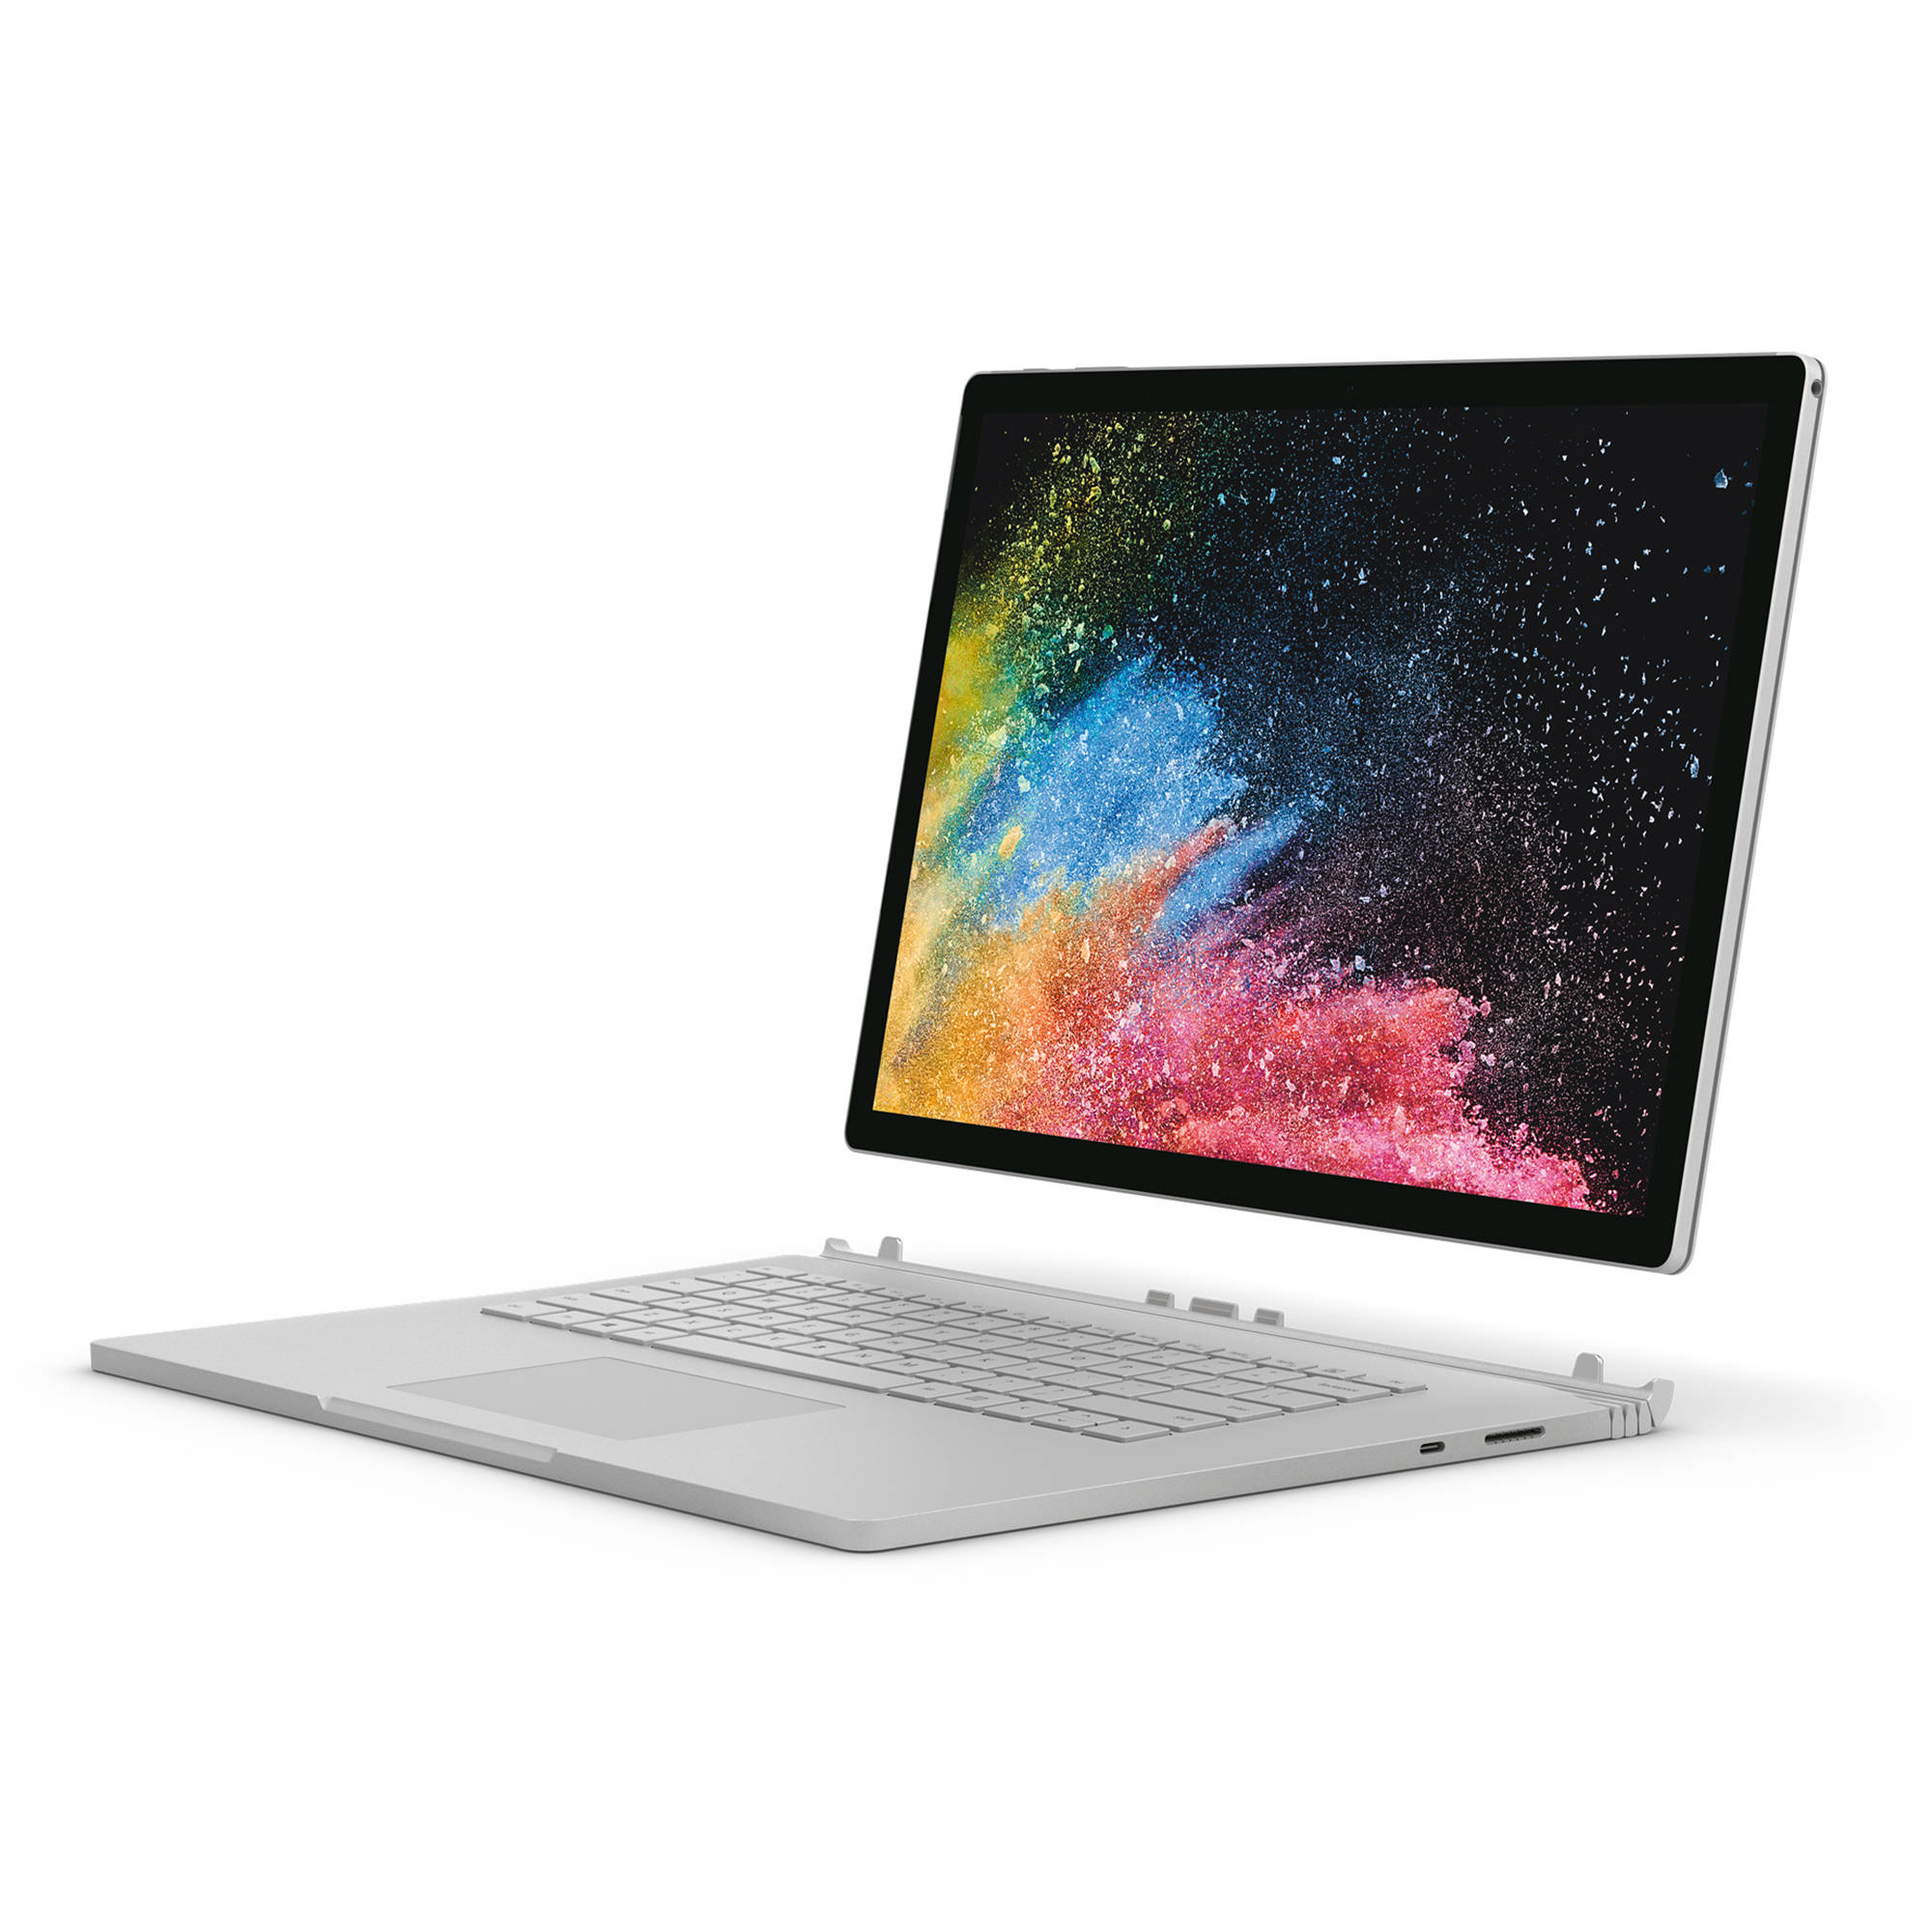 Microsoft Surface Book 2 (15-inch) review – TheCanadianTechie